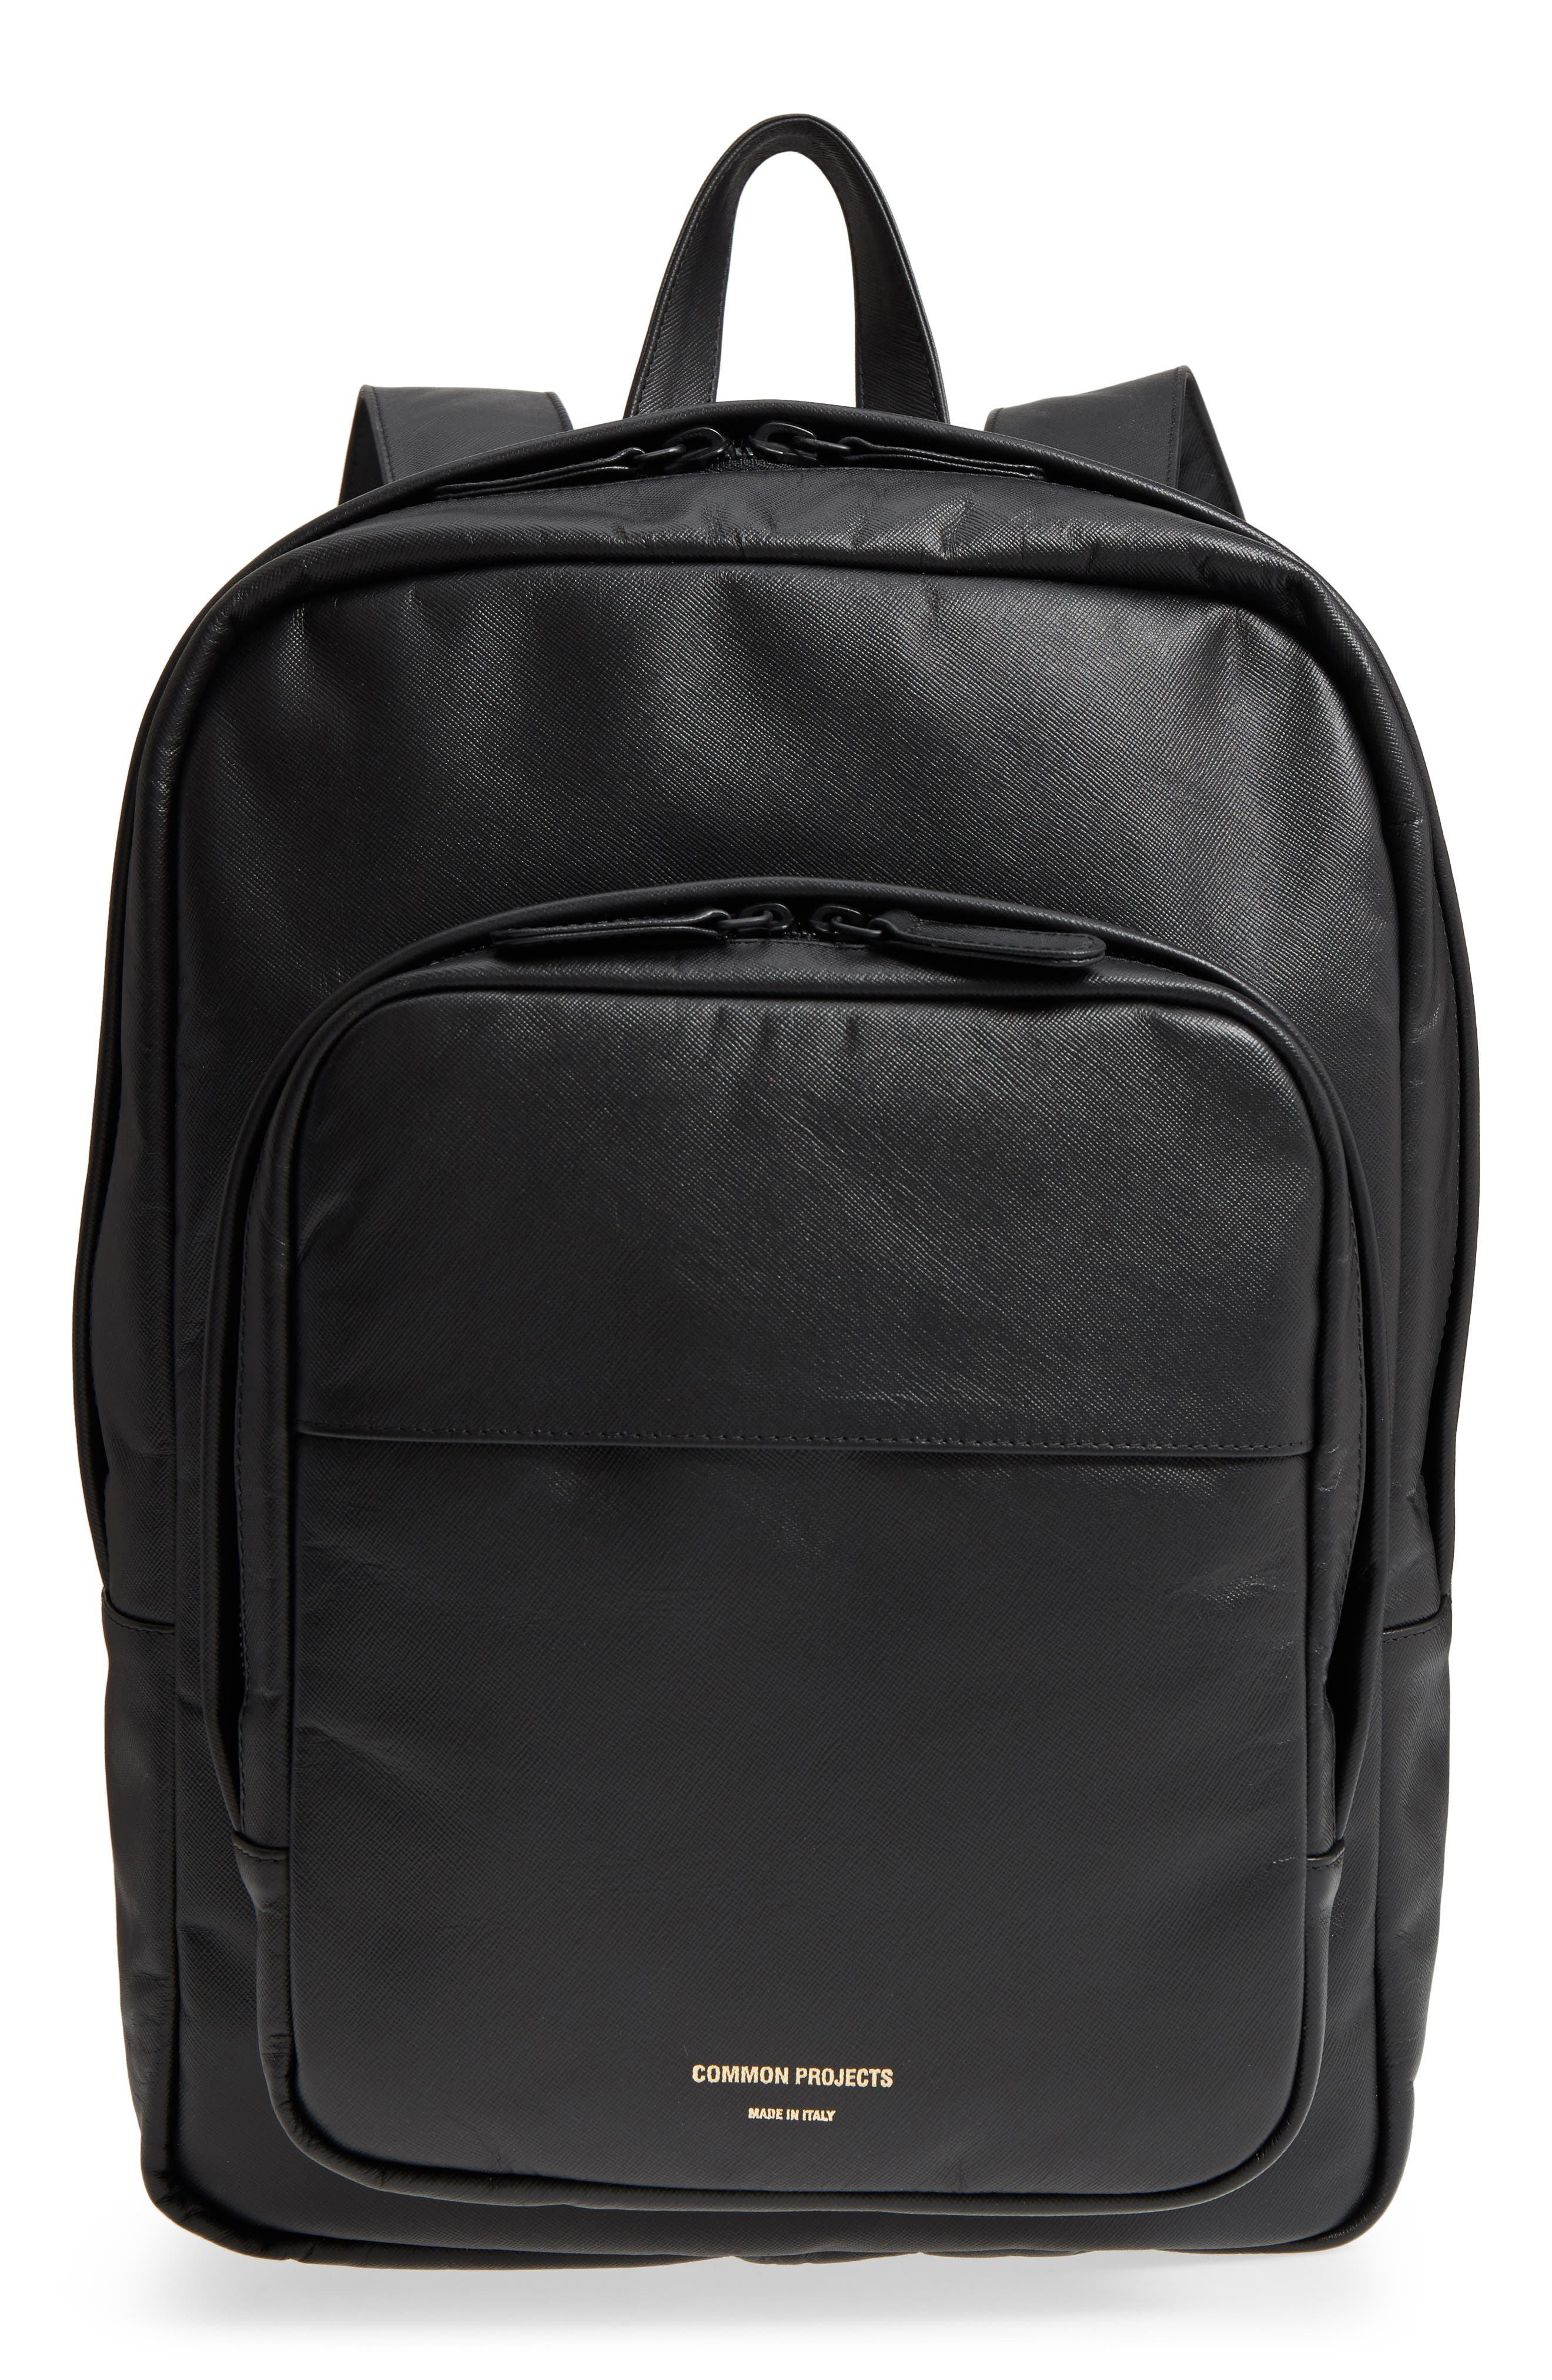 Saffiano Leather Backpack,                         Main,                         color, Black